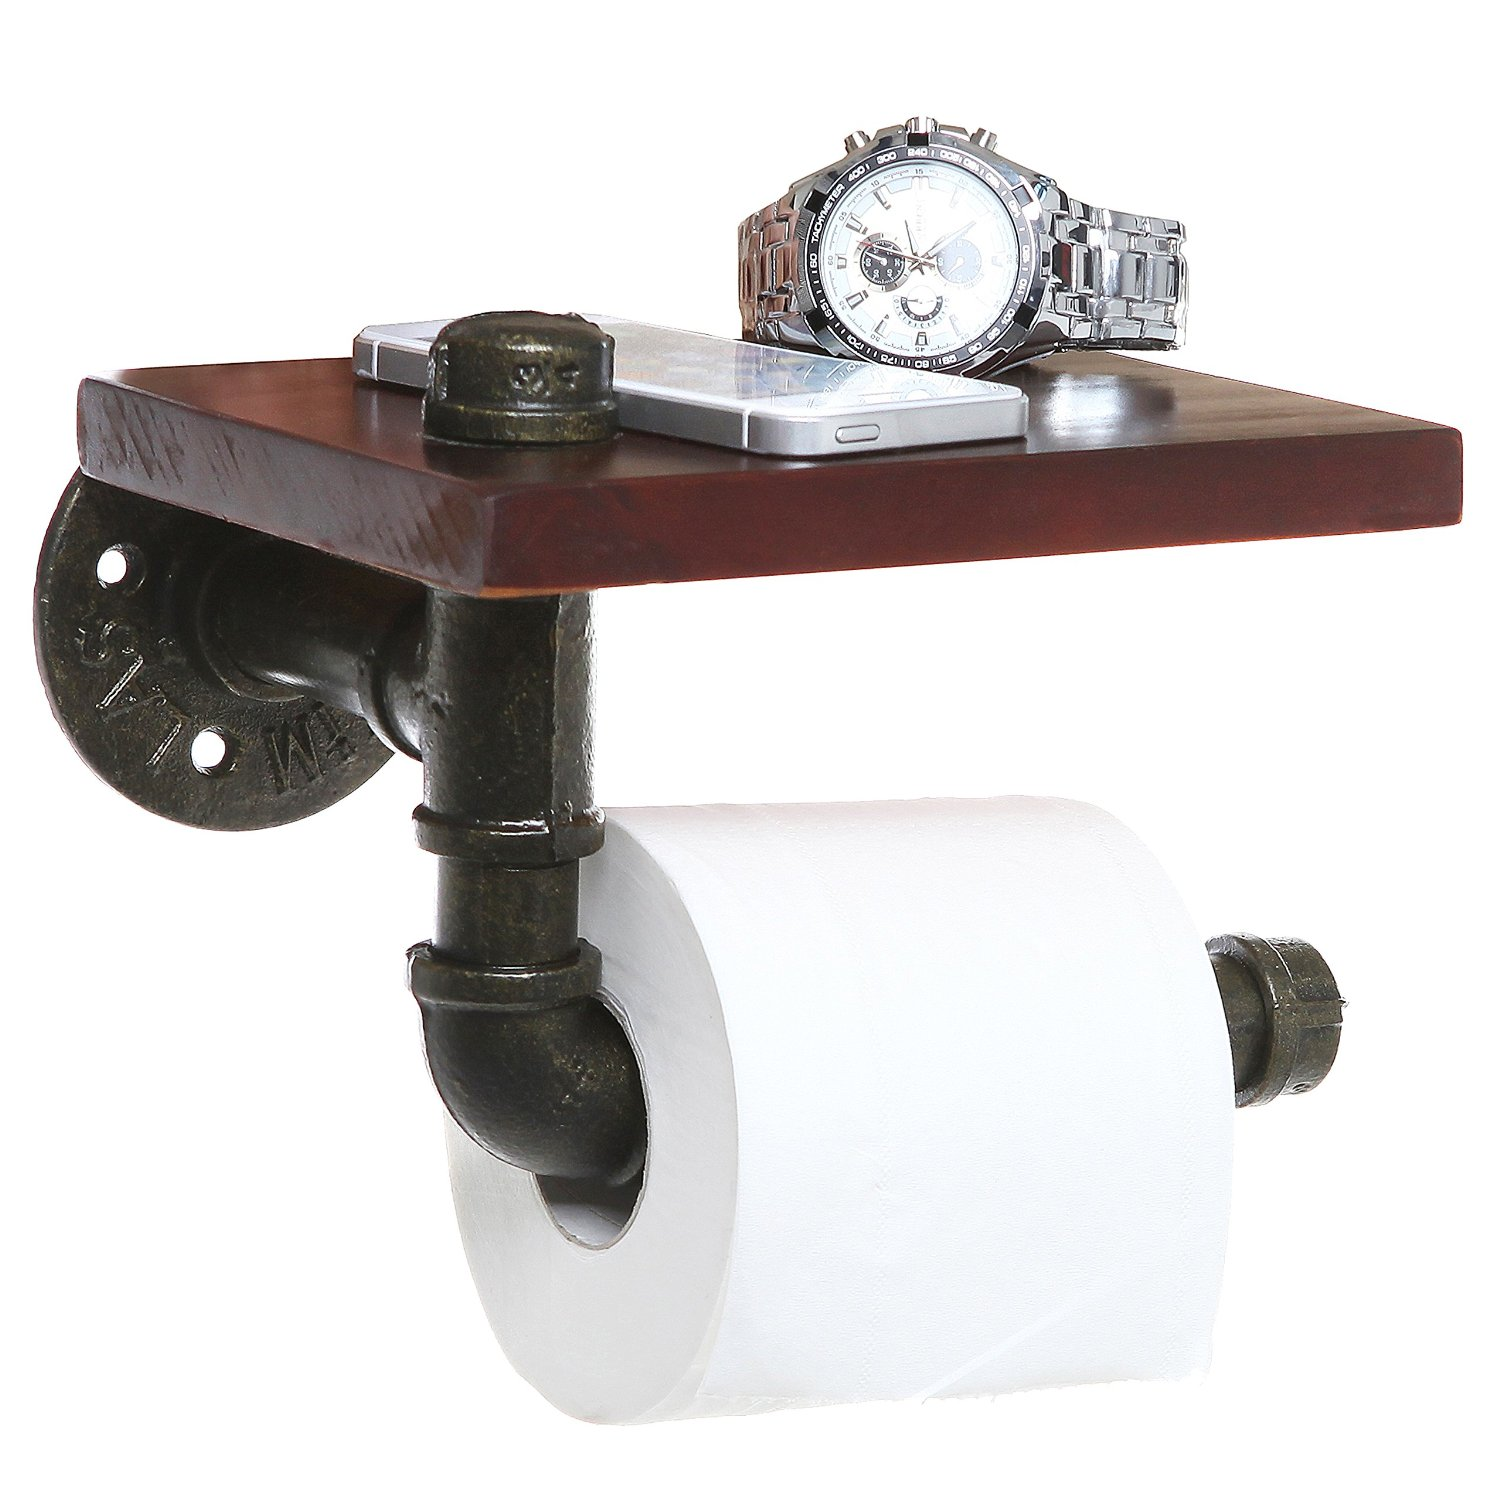 Enclosed Toilet Paper Holder Bathroom Shelves Beautiful And Easy Diy Bathroom